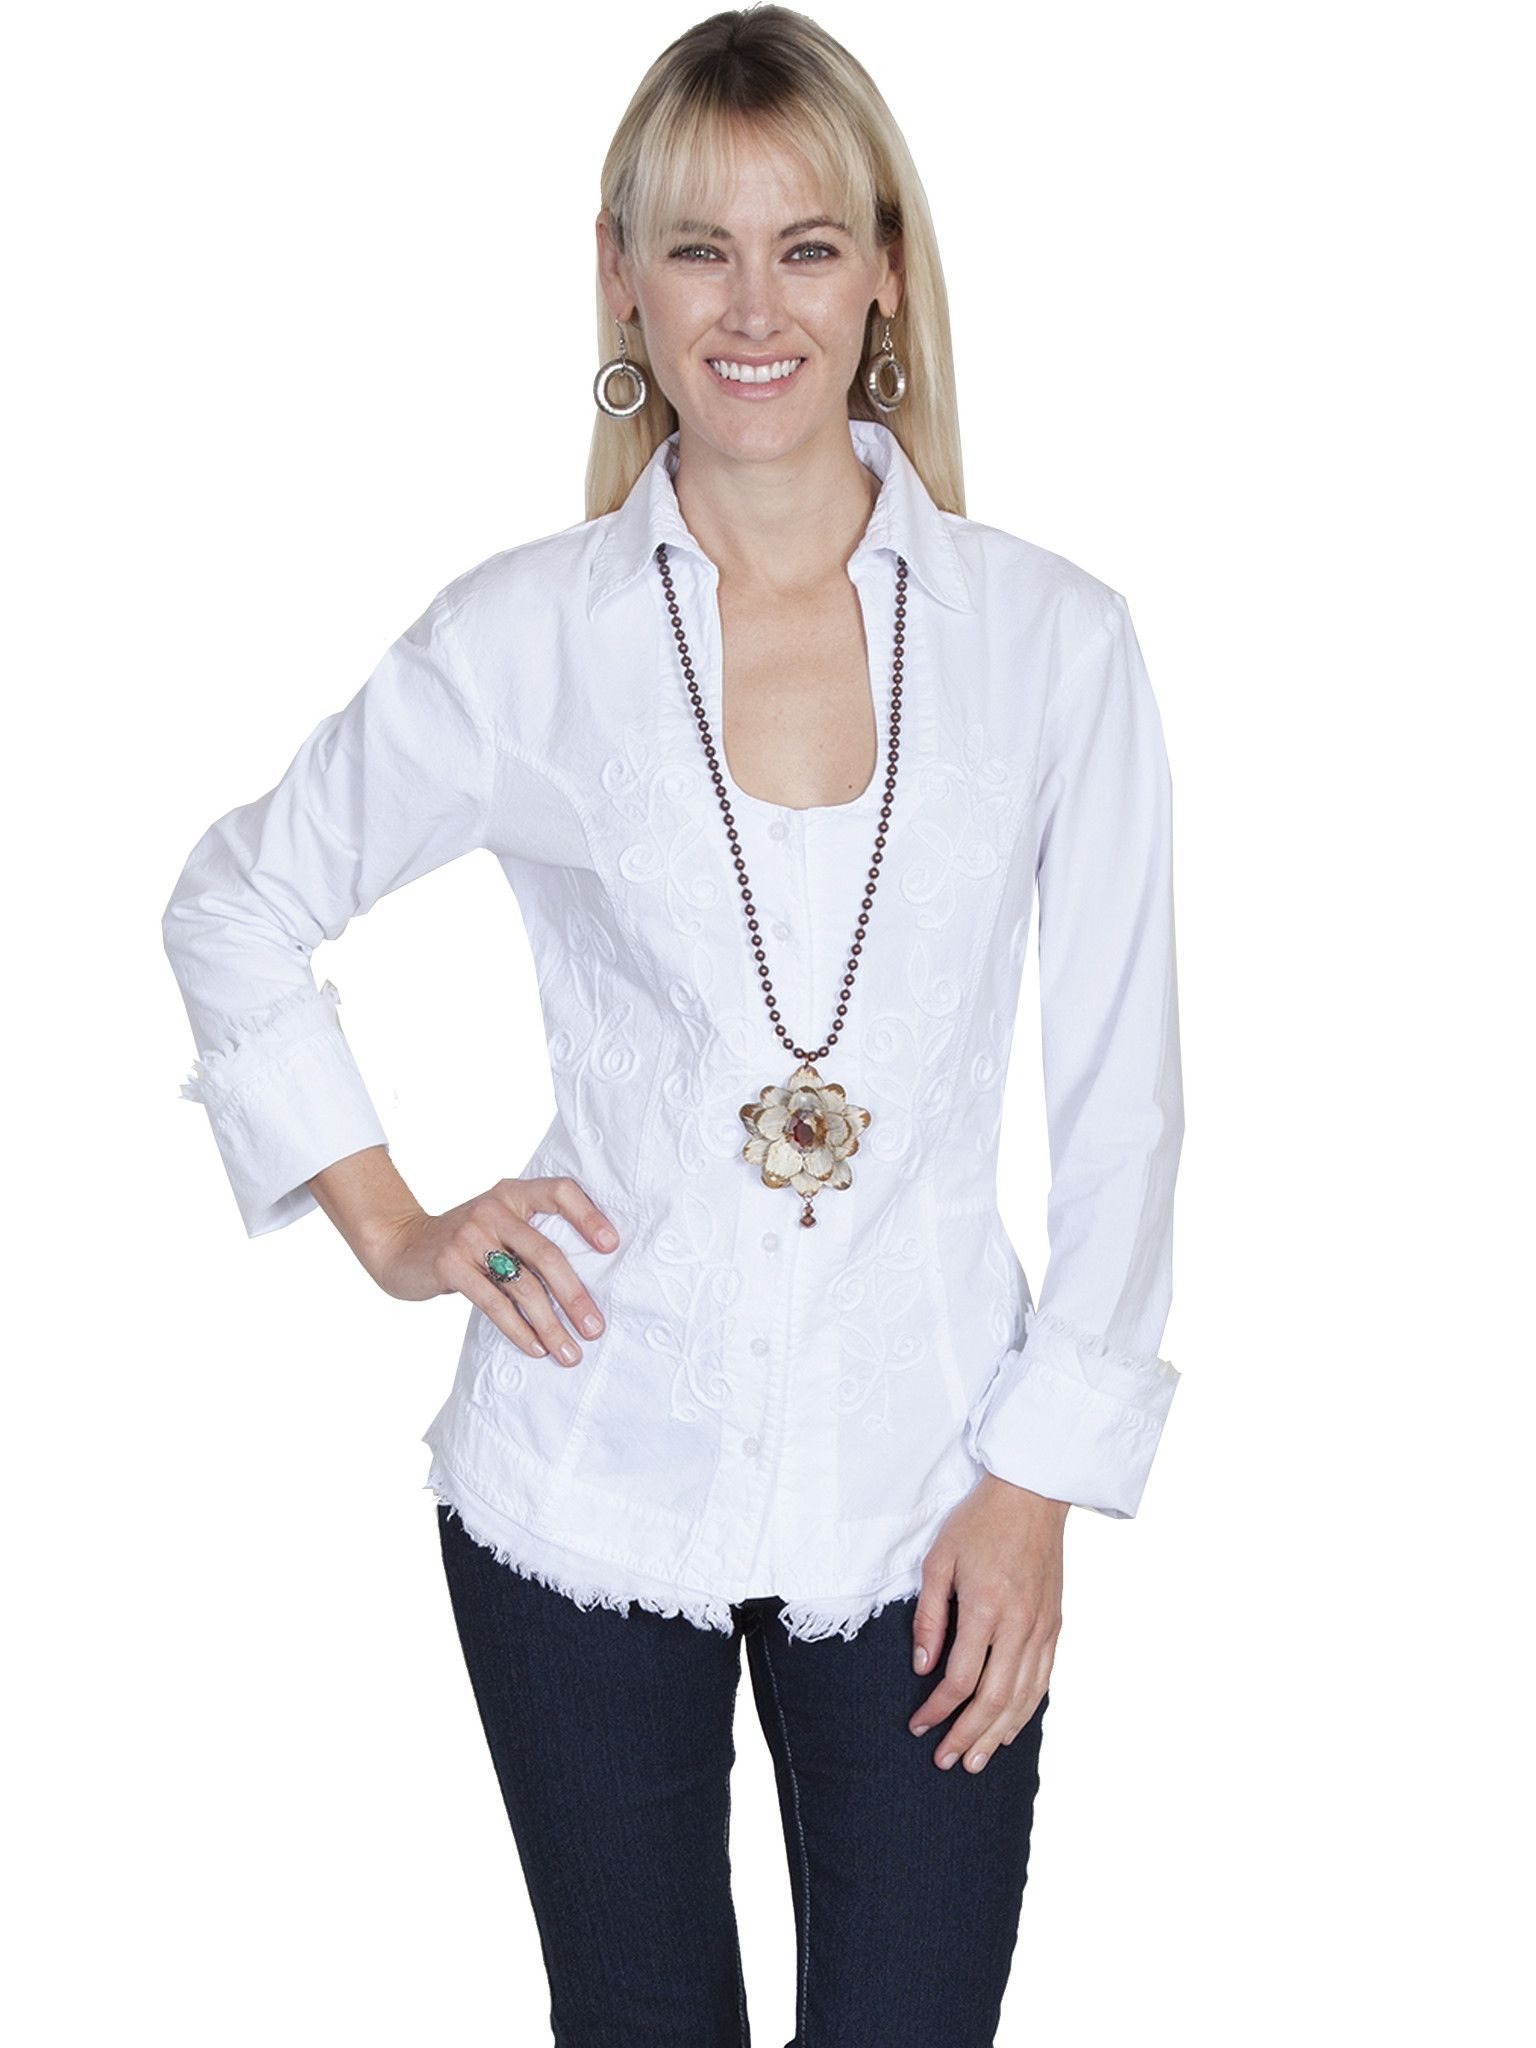 527d514b46 Scully Cantina Womens White 100% Cotton L S Frayed Edges Blouse ...